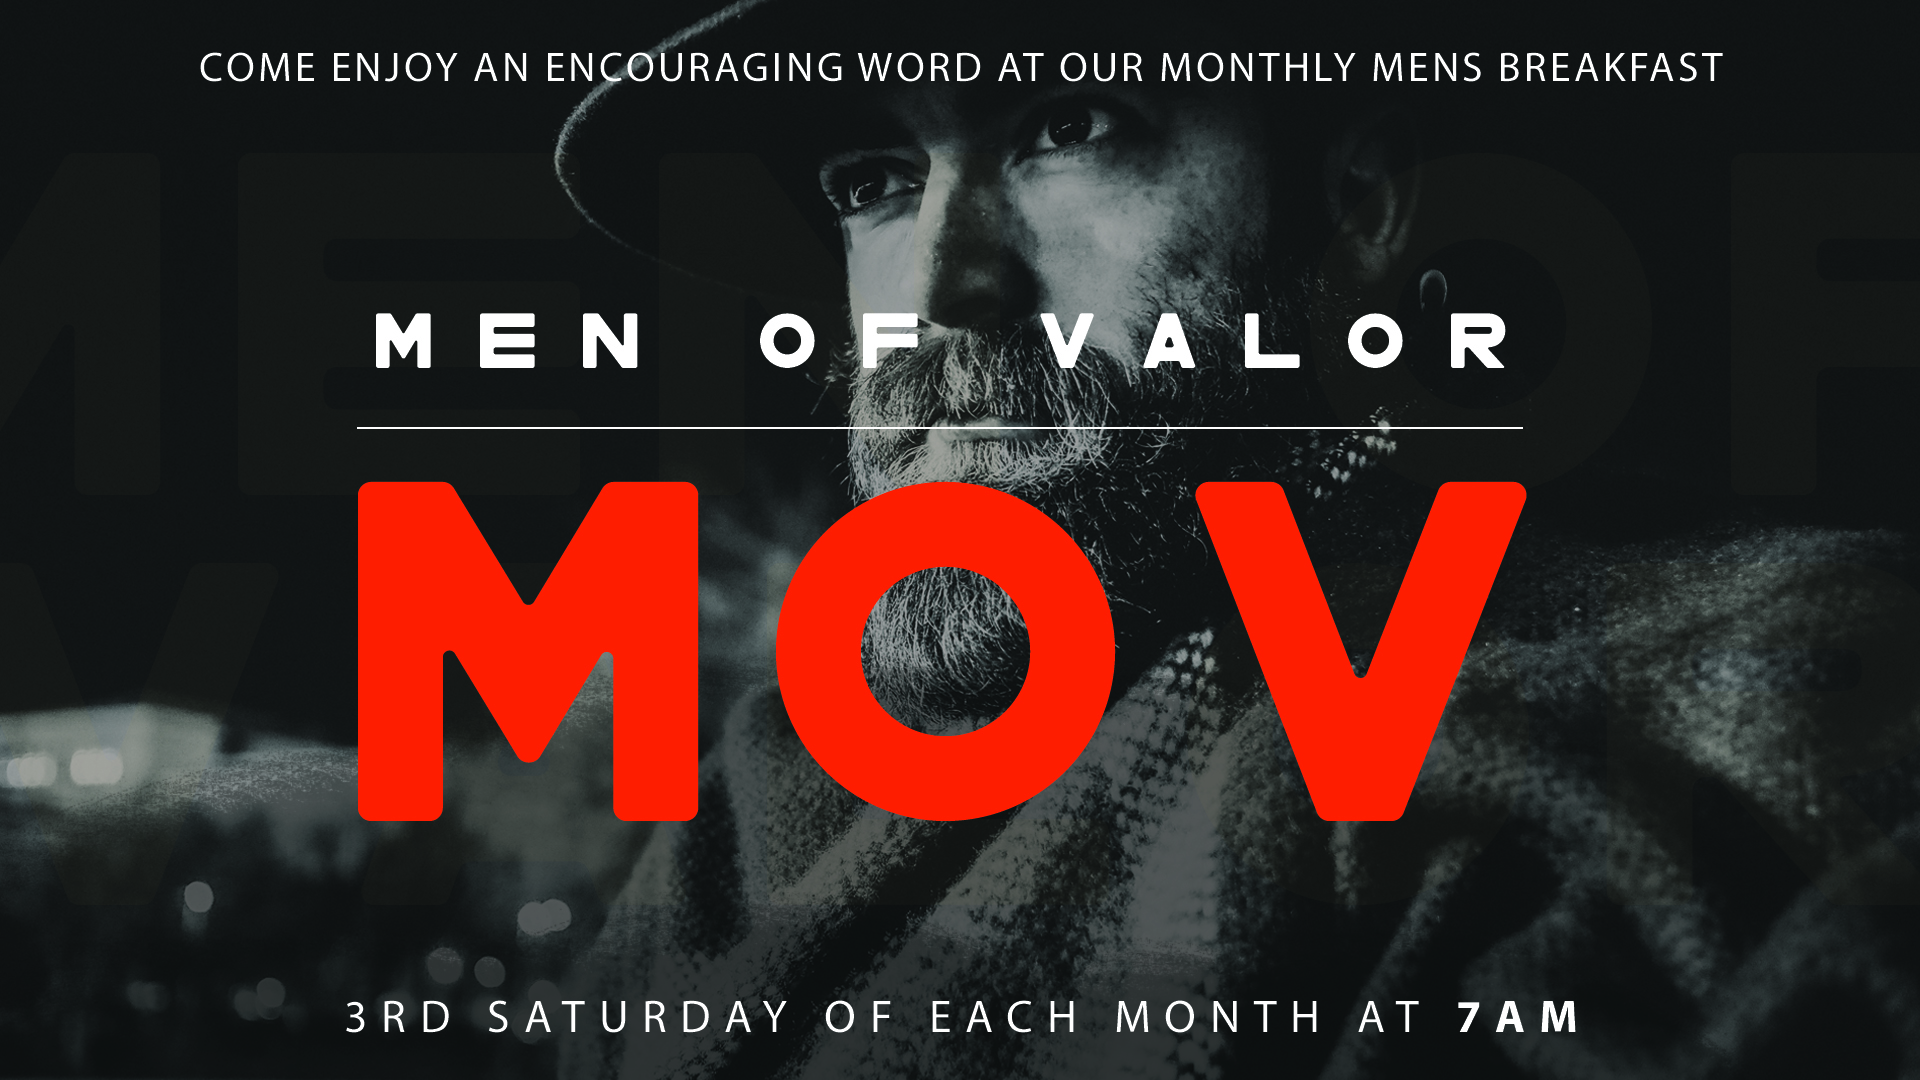 men of valor - We have a men's breakfast every third Saturday at 7AM! Join us for an encouraging message and good food!